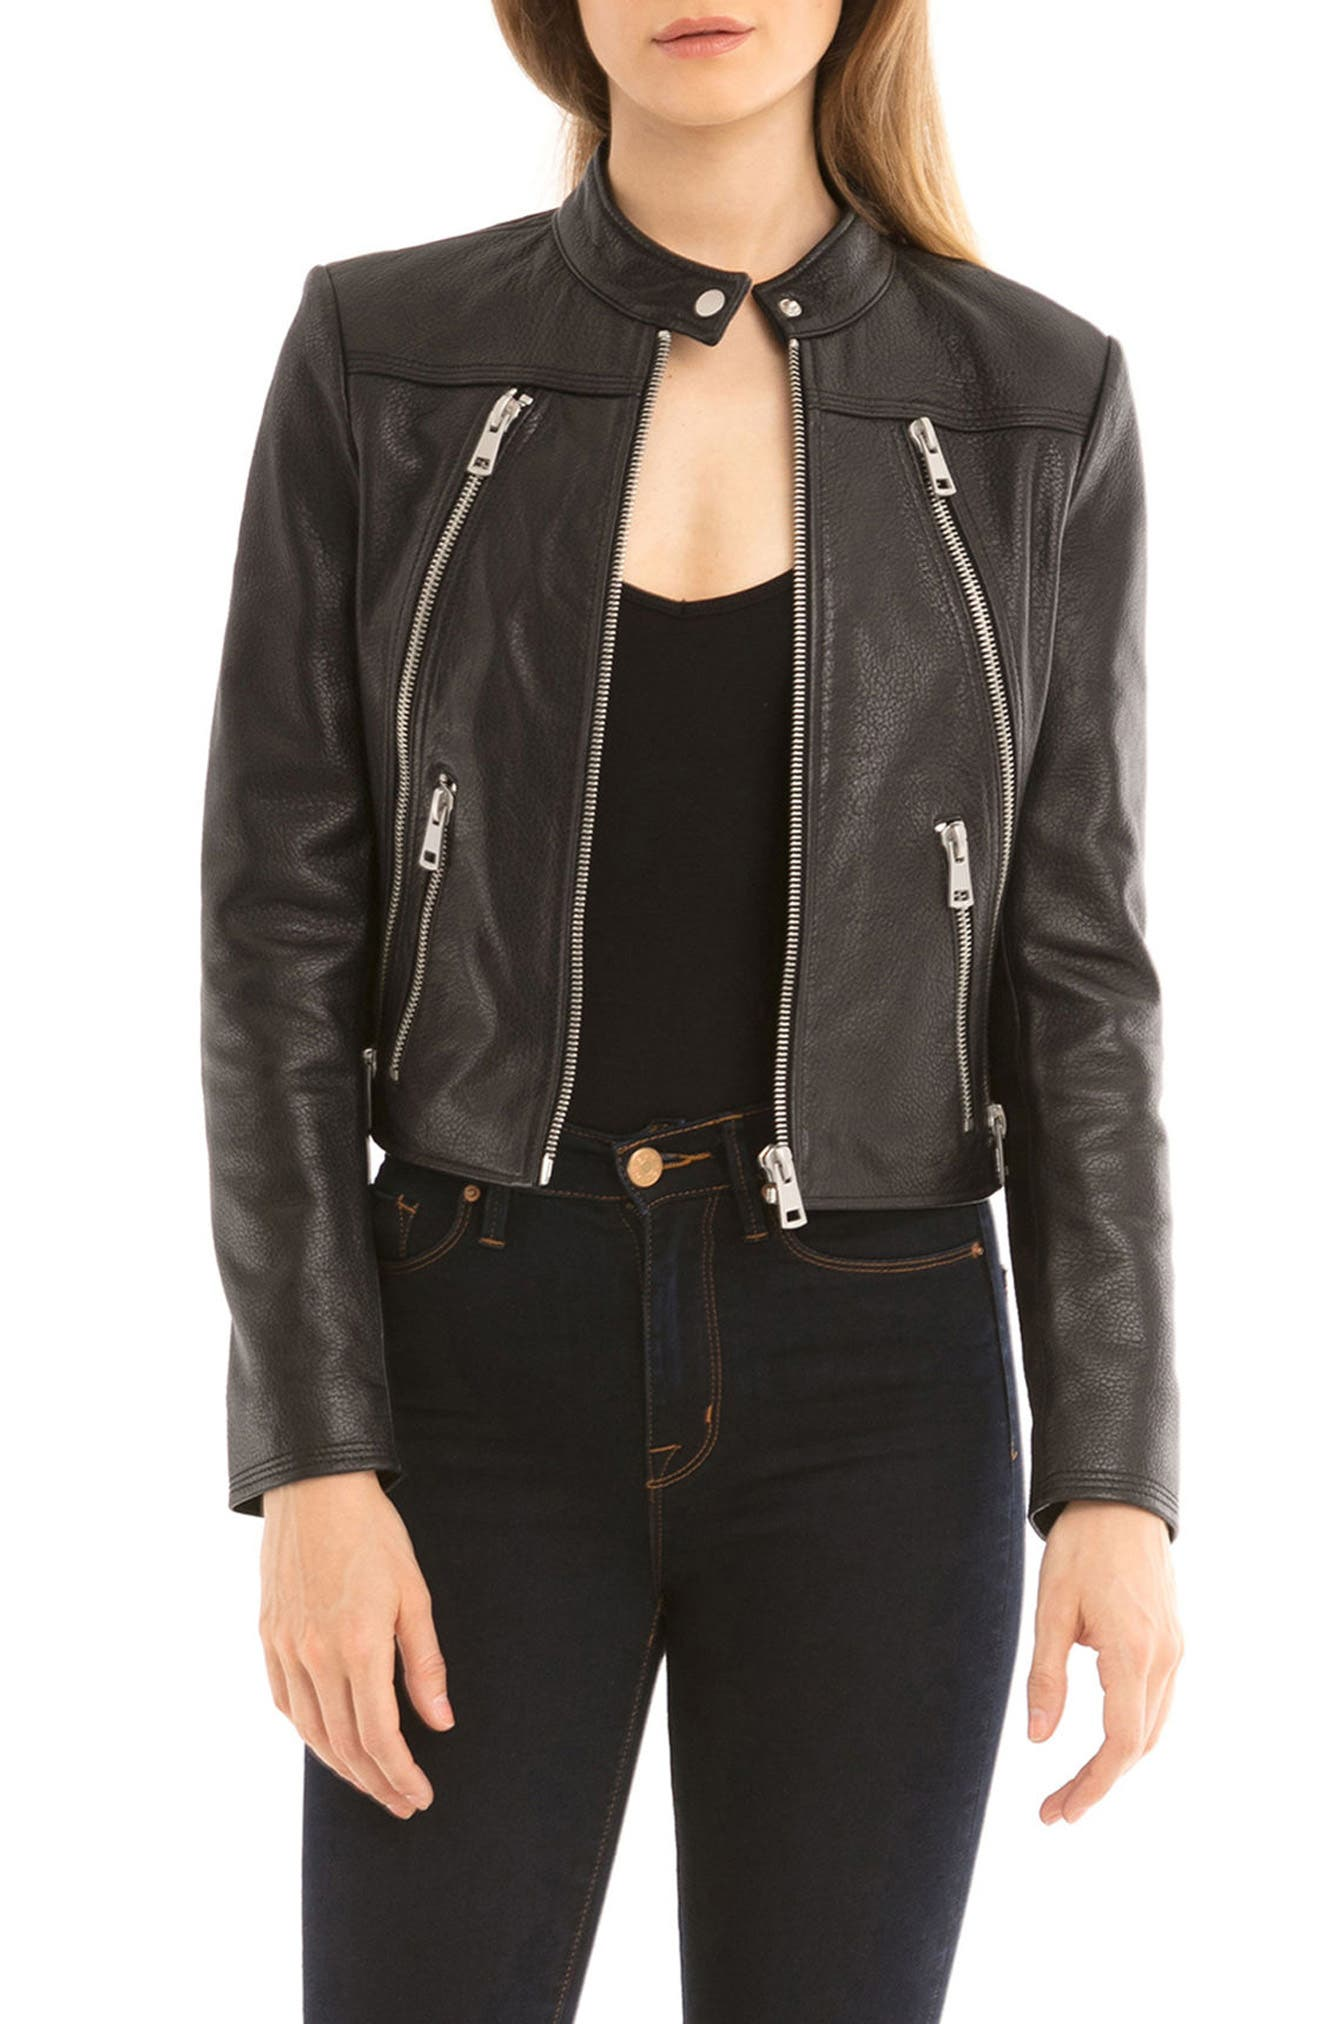 Alternate Image 1 Selected - Bagatelle Textured Leather Jacket